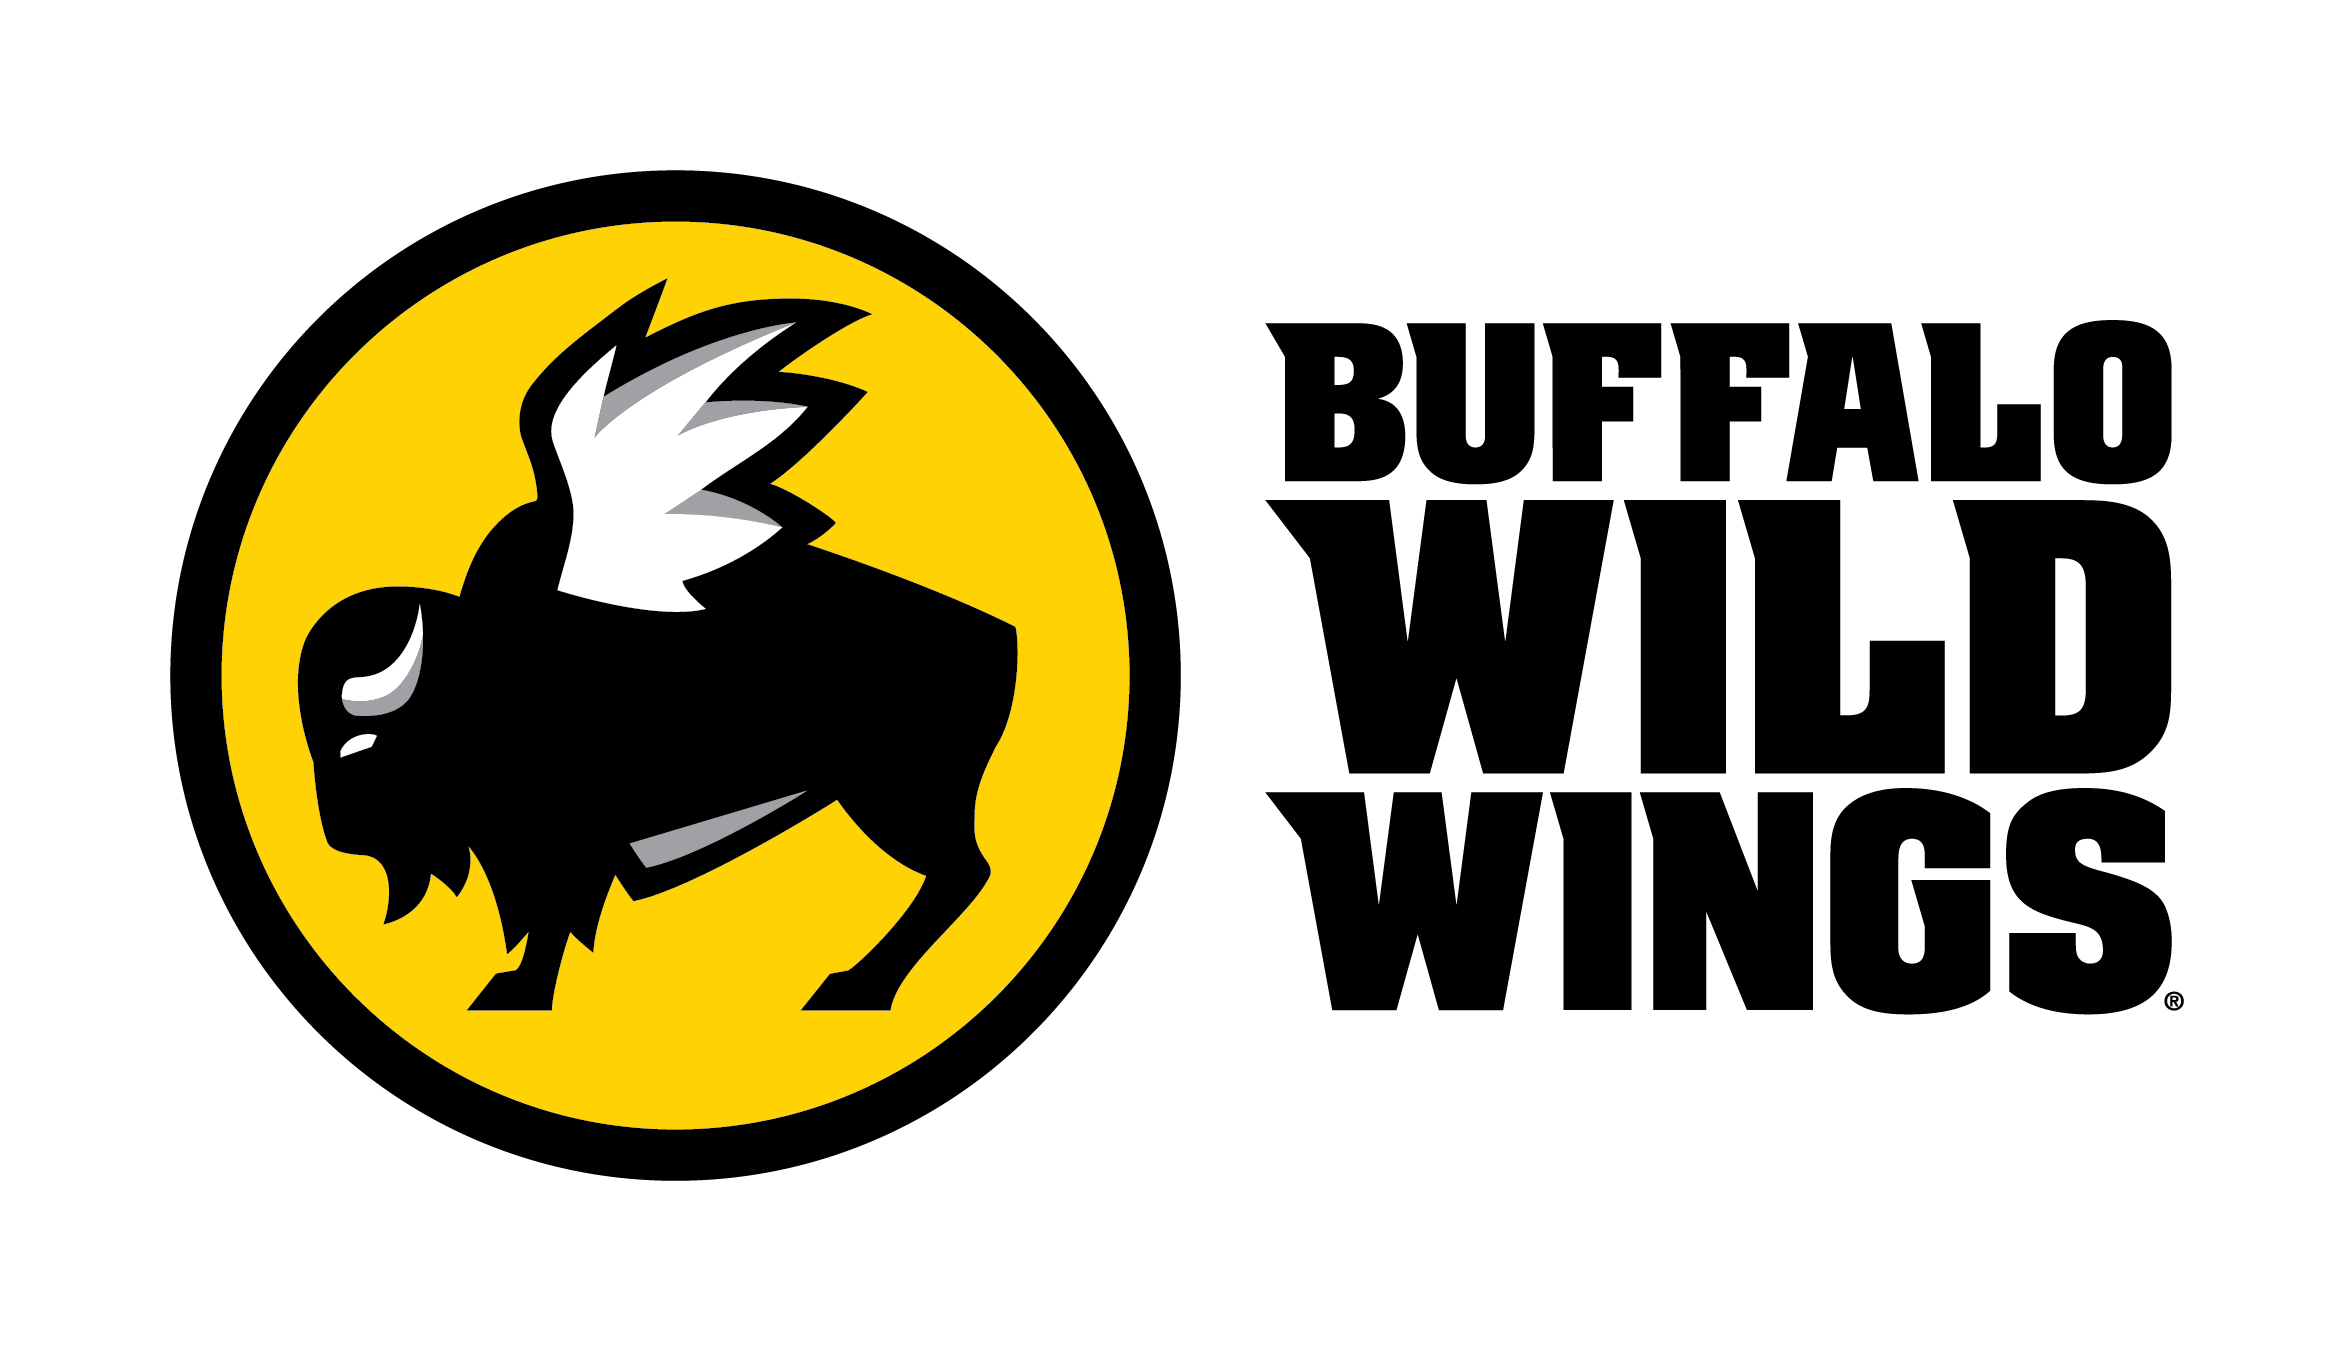 Buffalo wild wings logo png. Arby s to buy